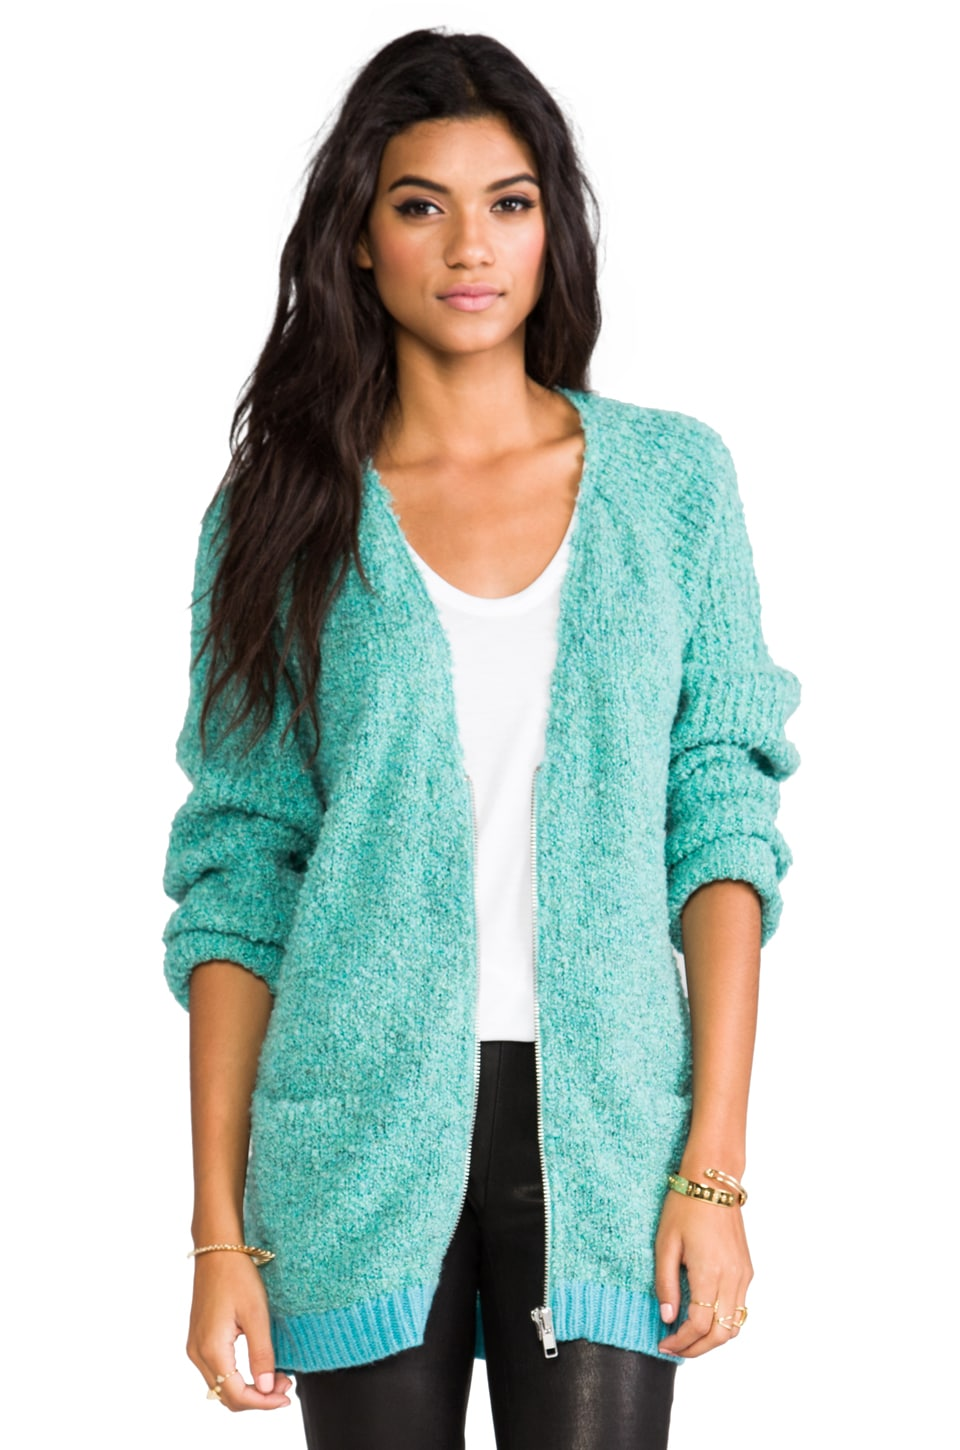 April, May Cougar Champhor Cardigan in Turquoise